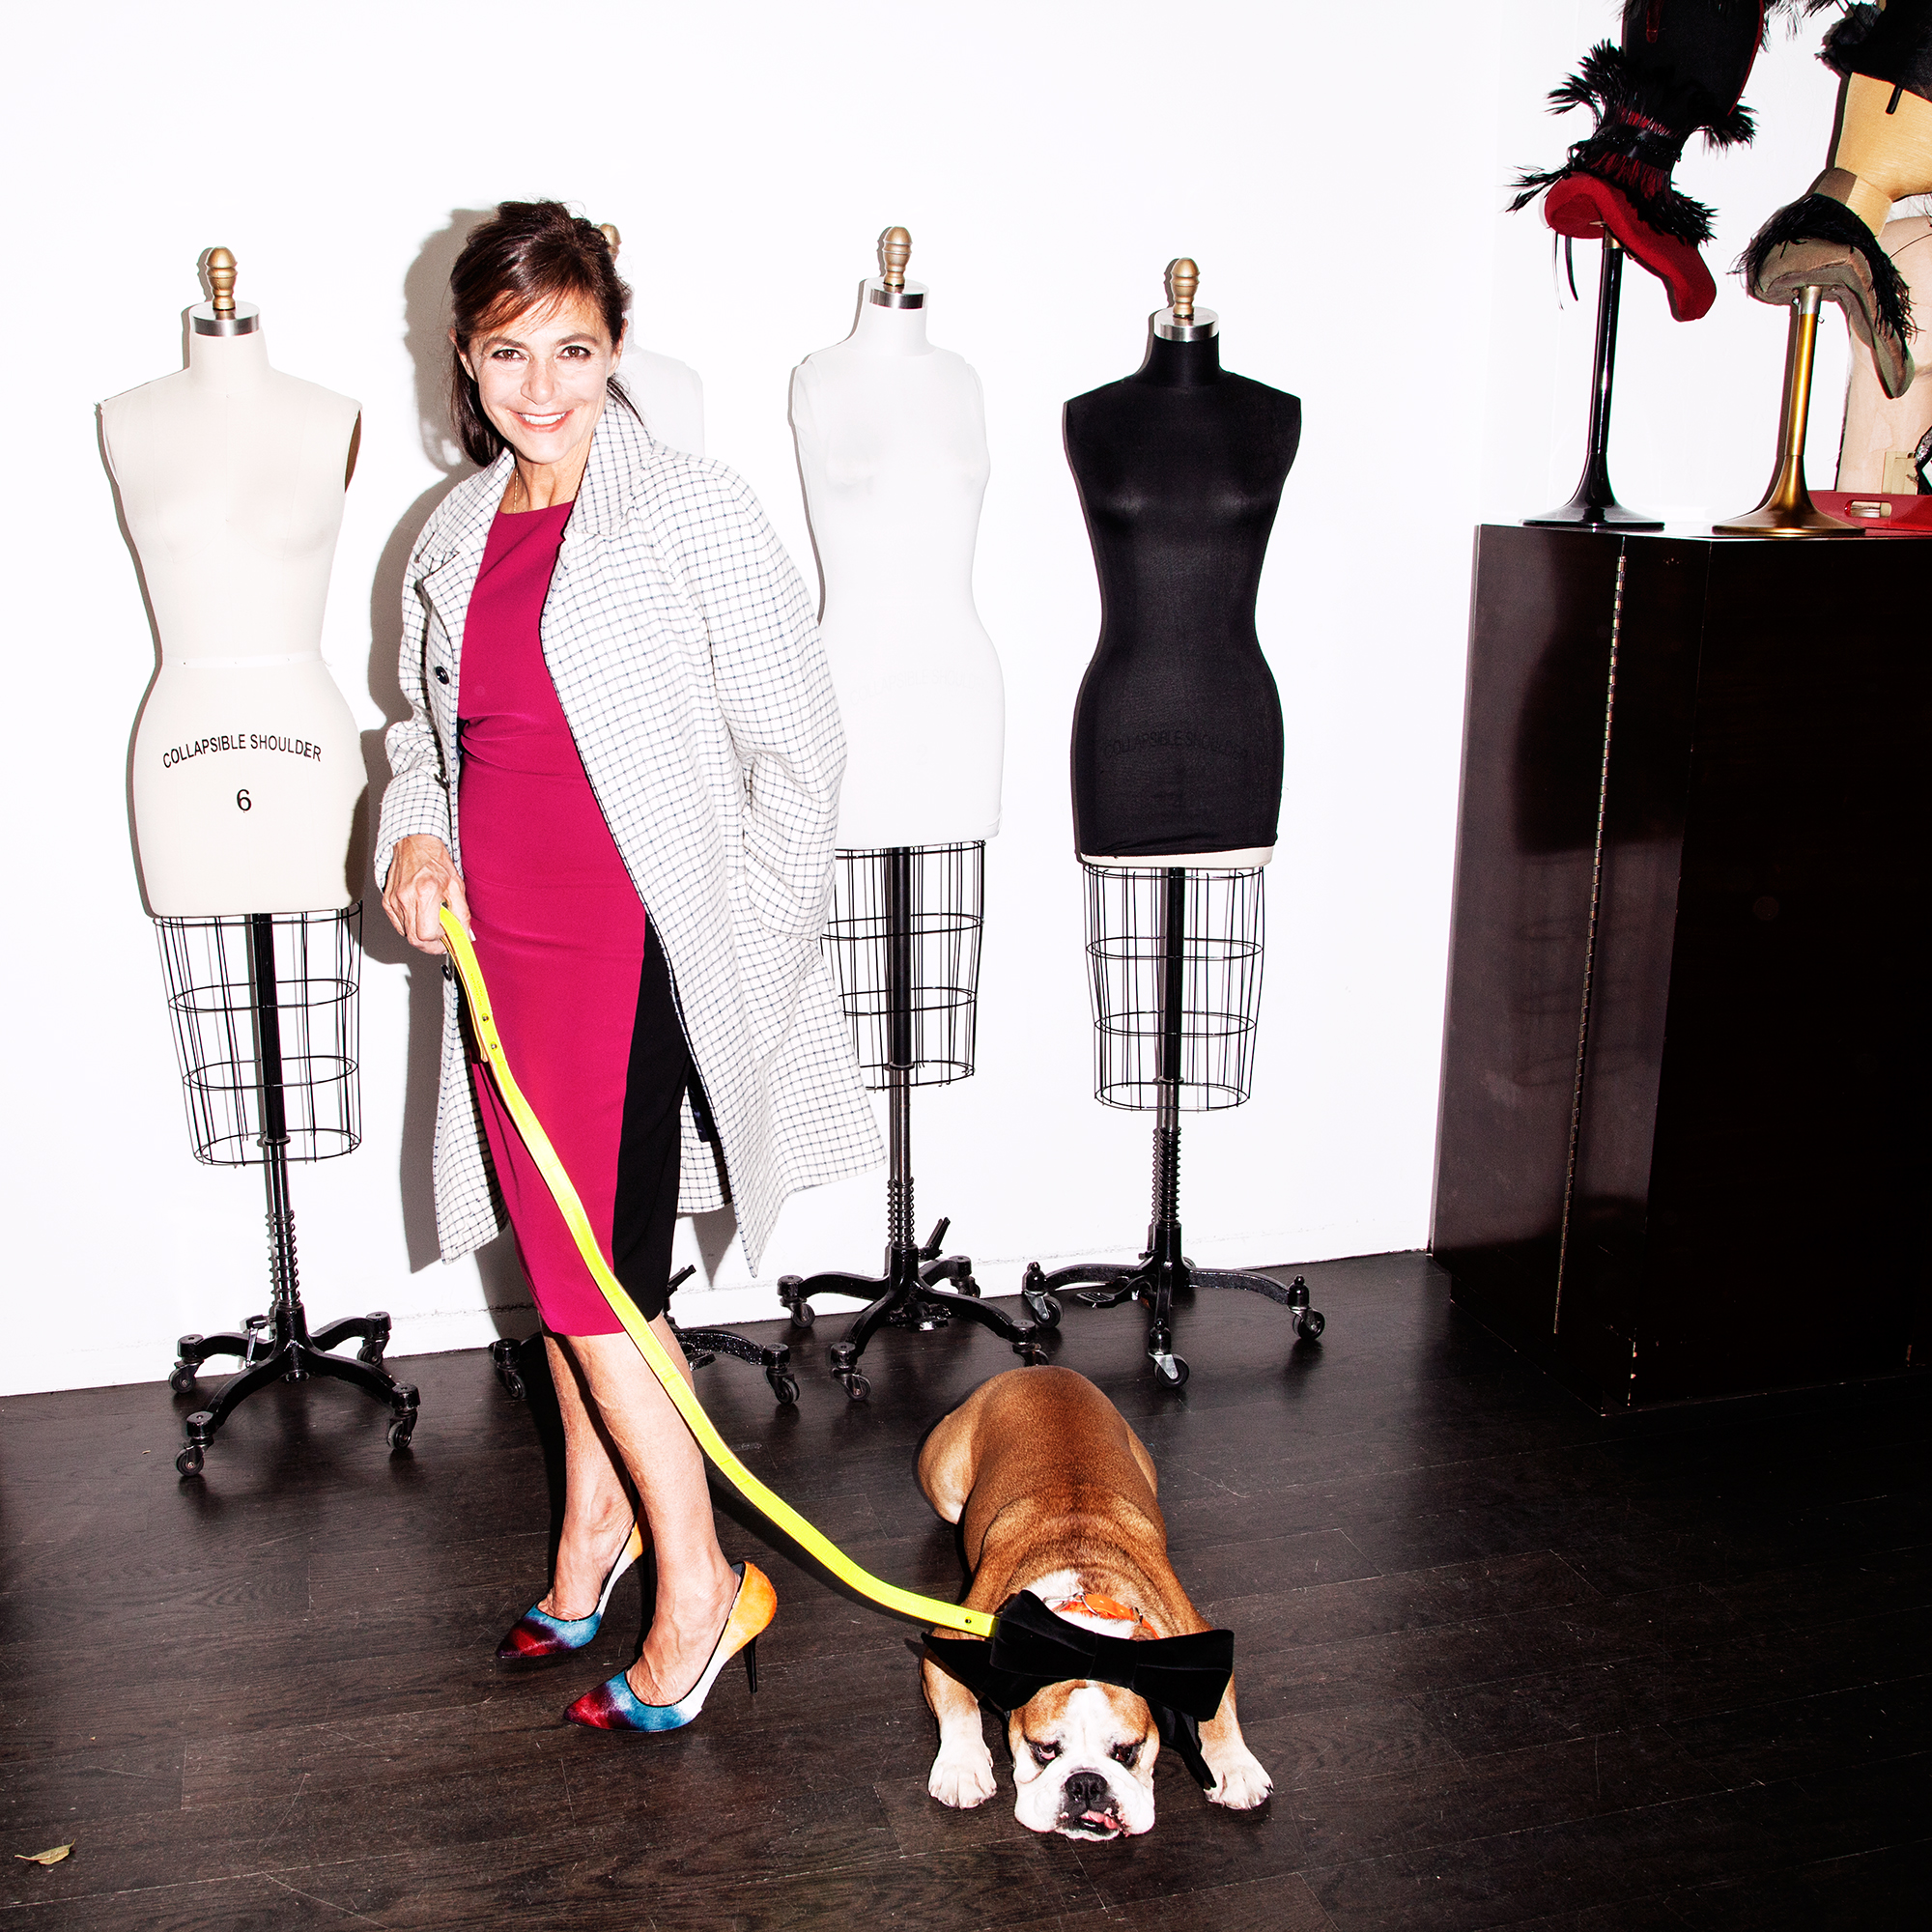 Irene and Gus in the Library. Irene wears a Narcisco Rodriguez dress, a Balenciaga Houndstooth coat and Pierre Hardy pumps. Gus wears a Balenciaga leash.